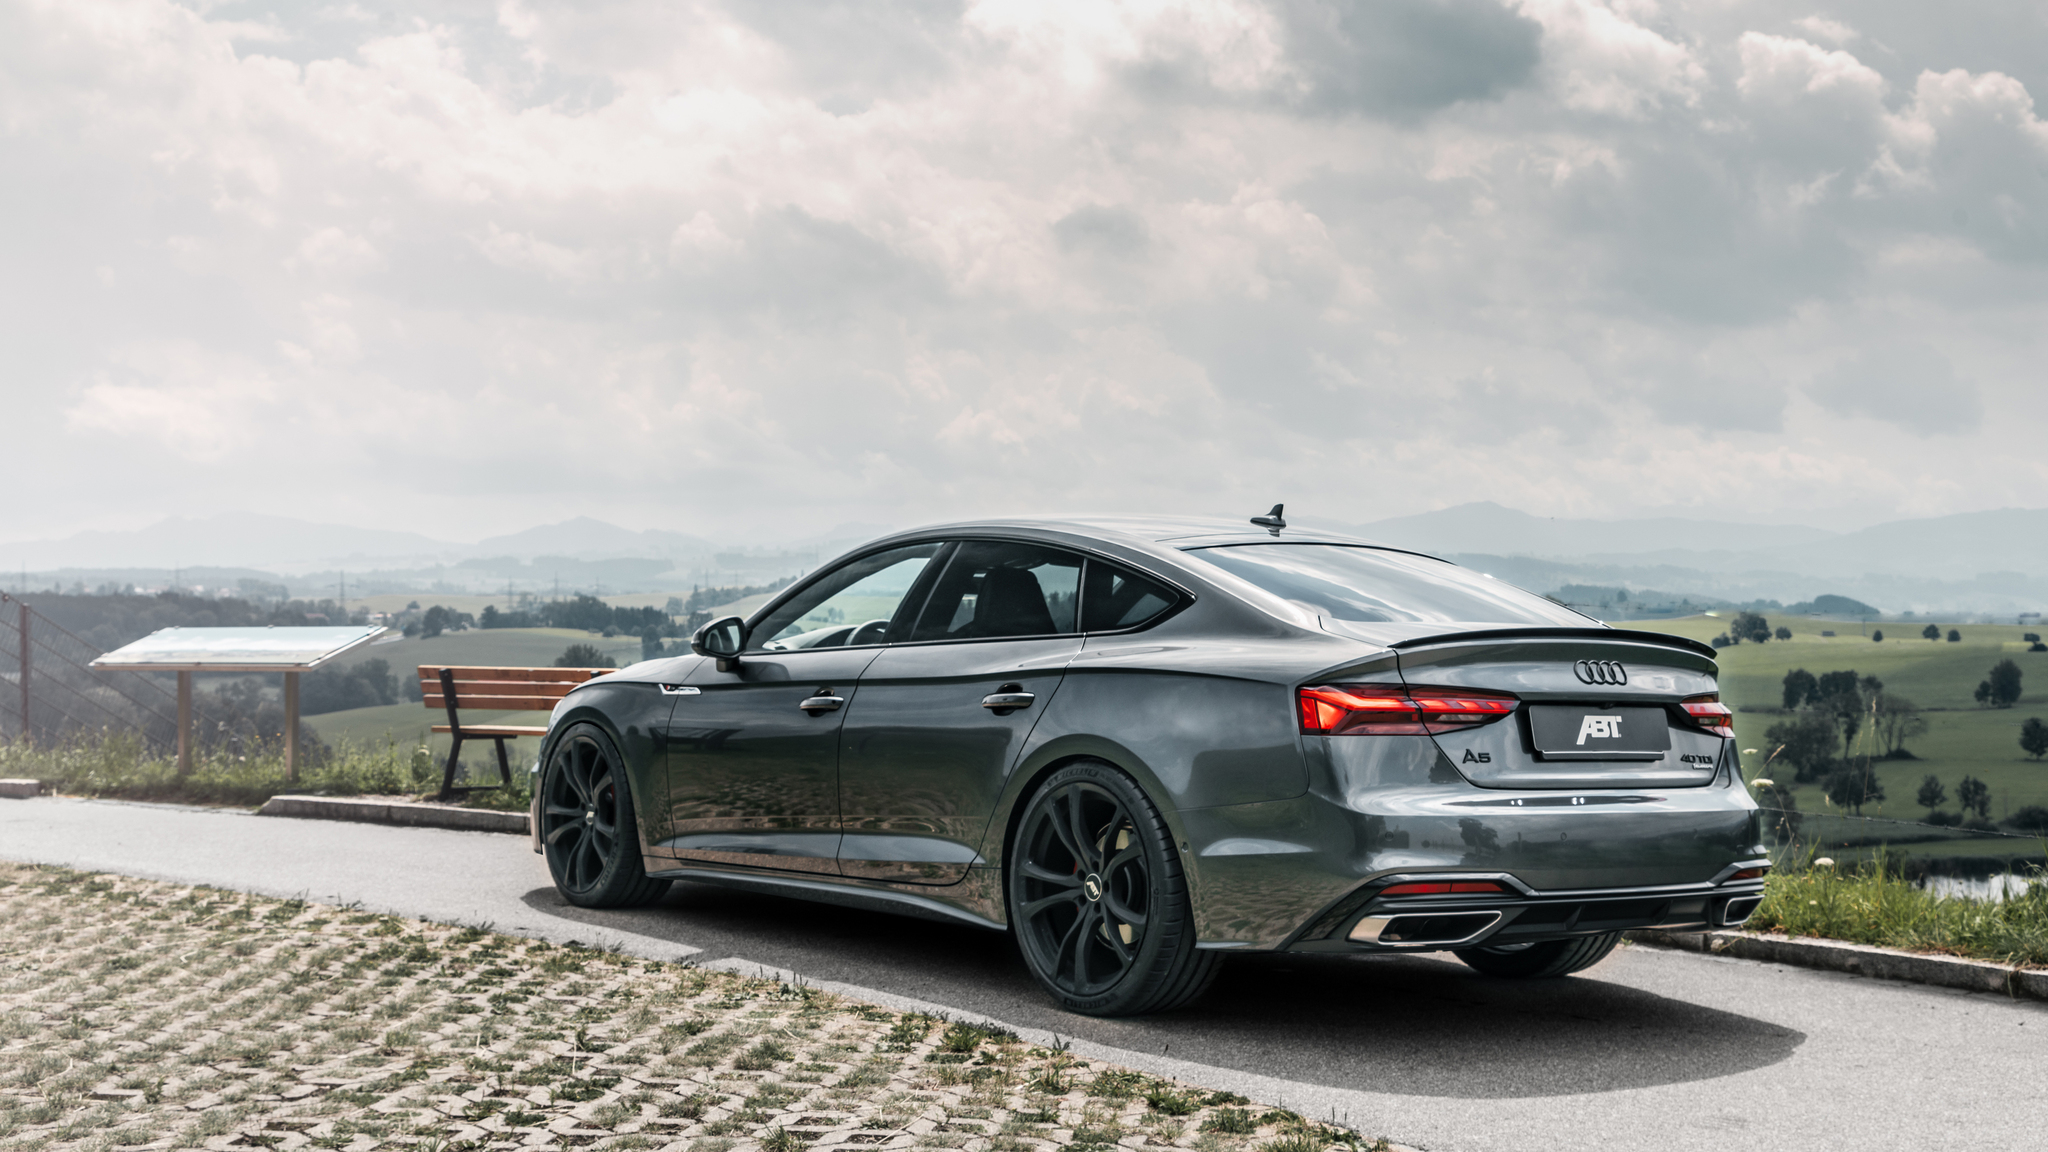 2048x1152 Abt Audi A5 Sportback 40 Tdi Quattro S Line 2020 5k 2048x1152 Resolution Hd 4k Wallpapers Images Backgrounds Photos And Pictures